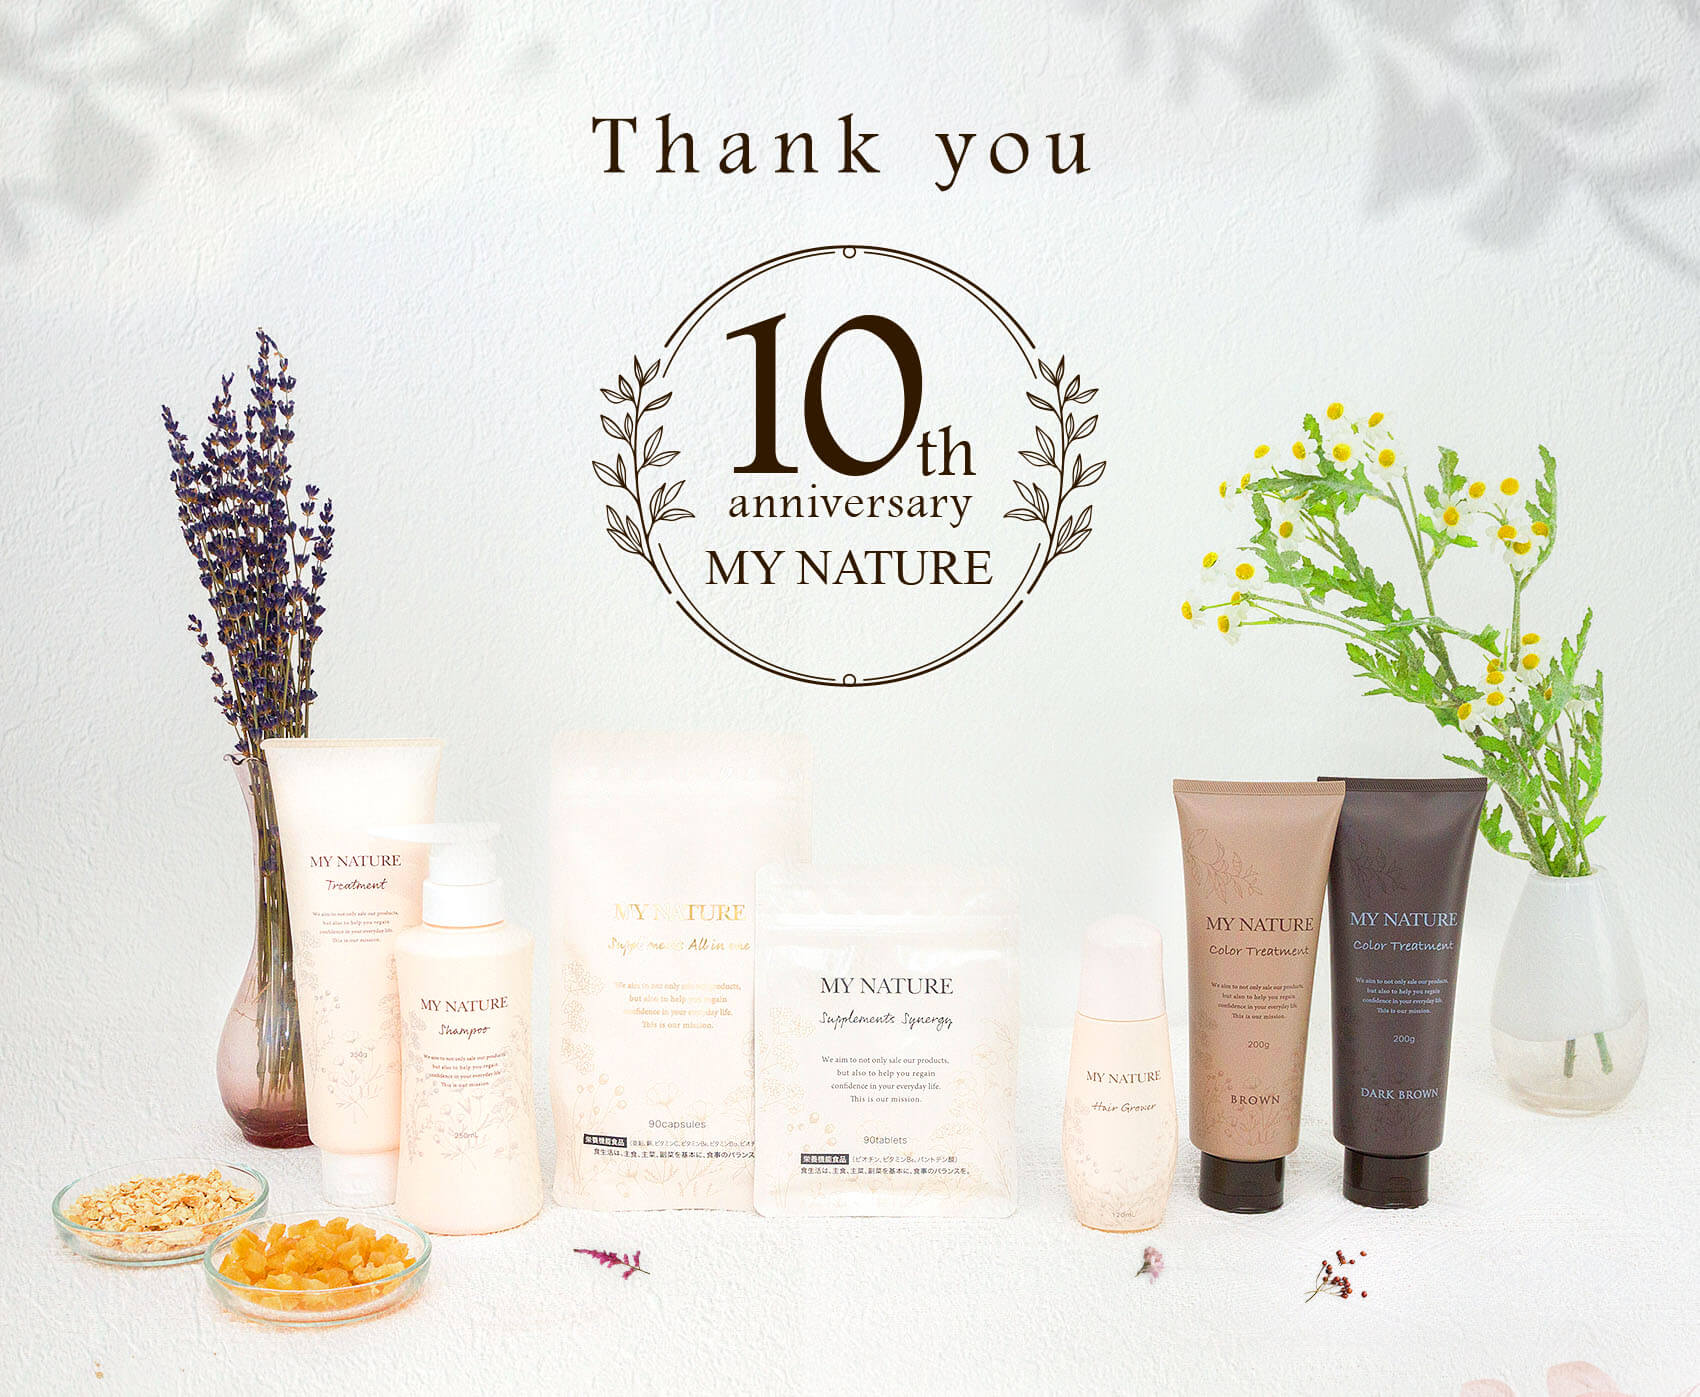 Thank you 10th anniversary MY NATURE